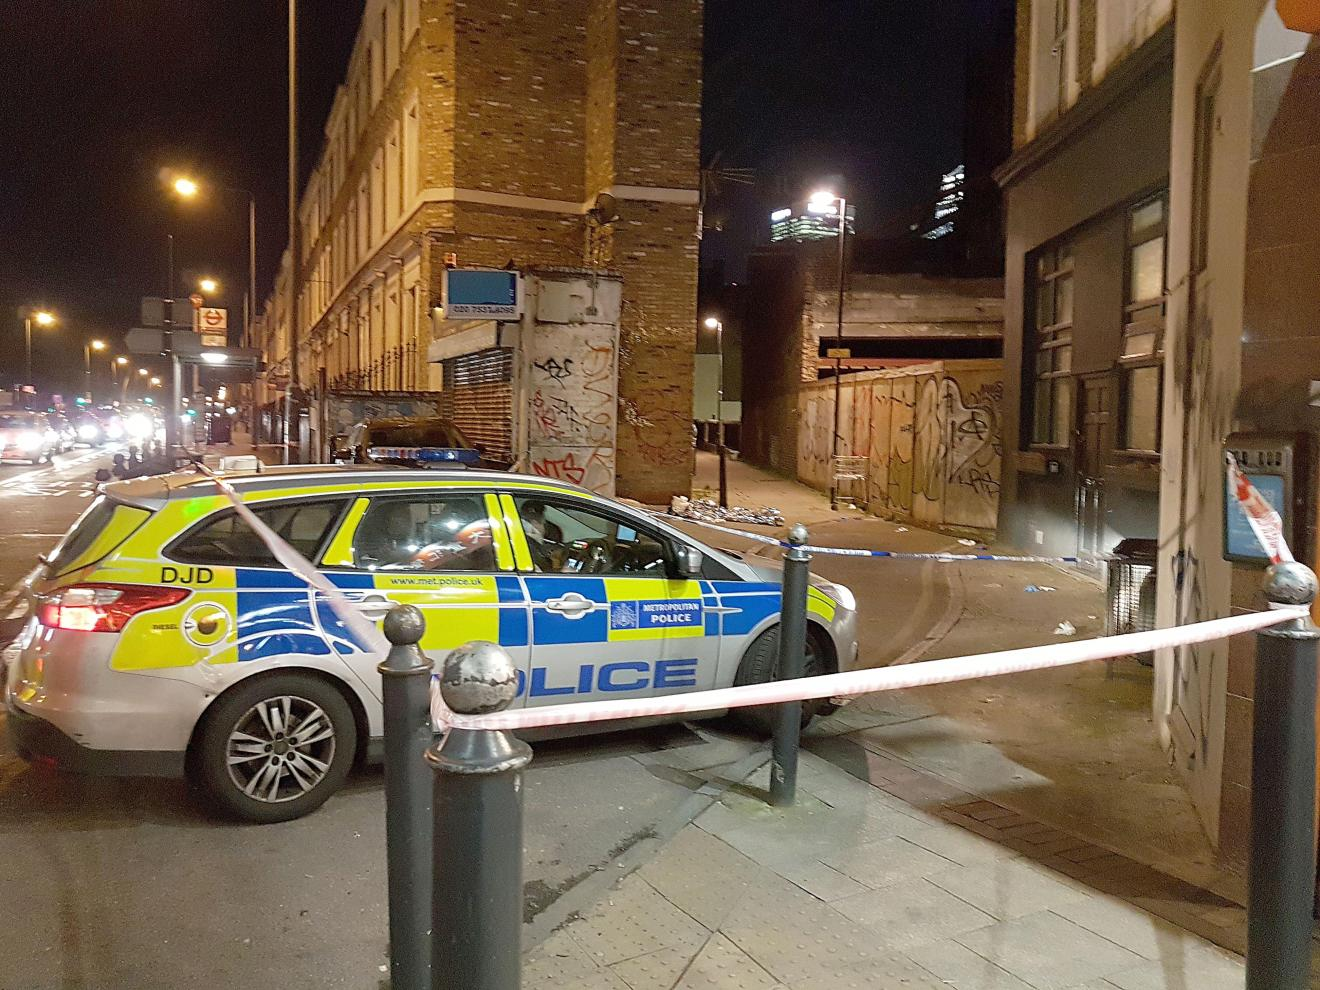 Police were called to a tiny alleyway corner in affluent East India Dock Road, Poplar, last night